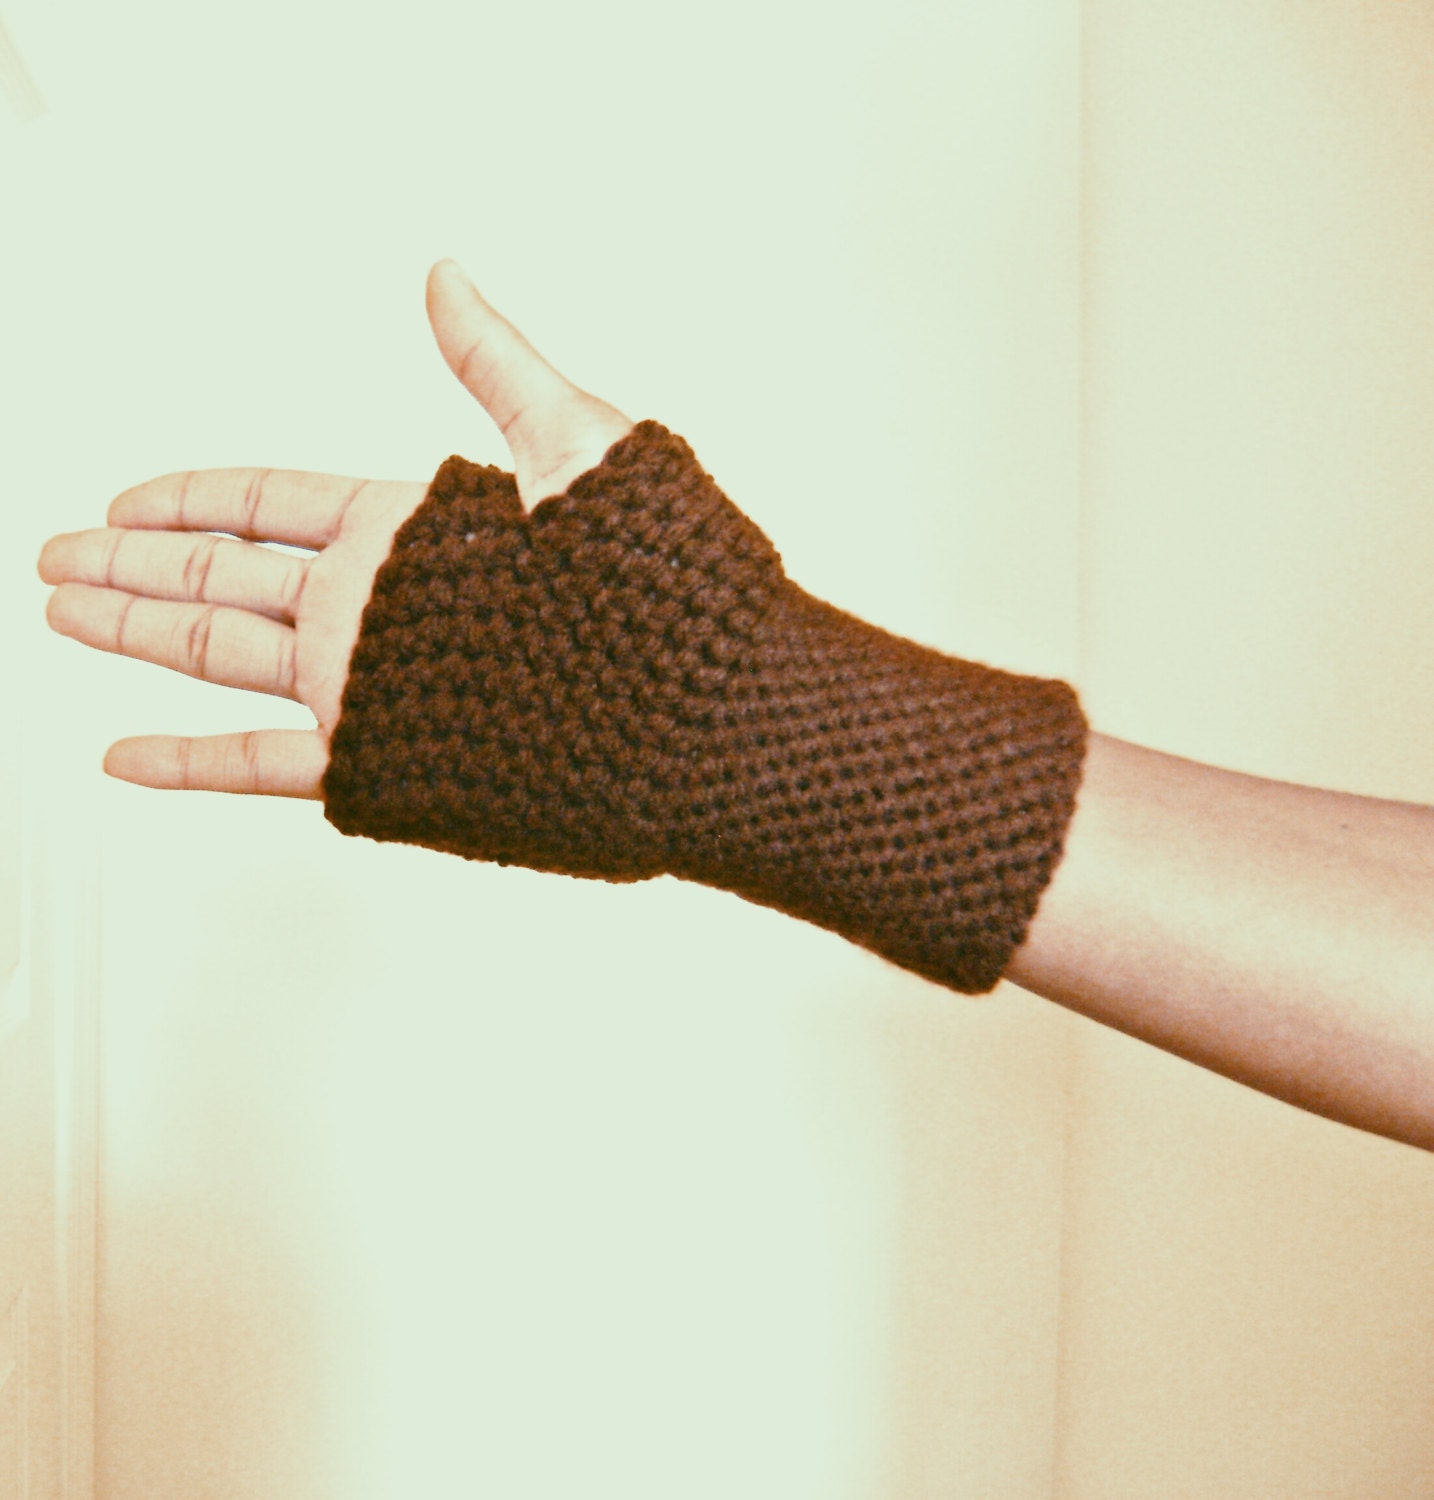 Crochet Fingerless Gloves Pattern Beginner : 301 Moved Permanently